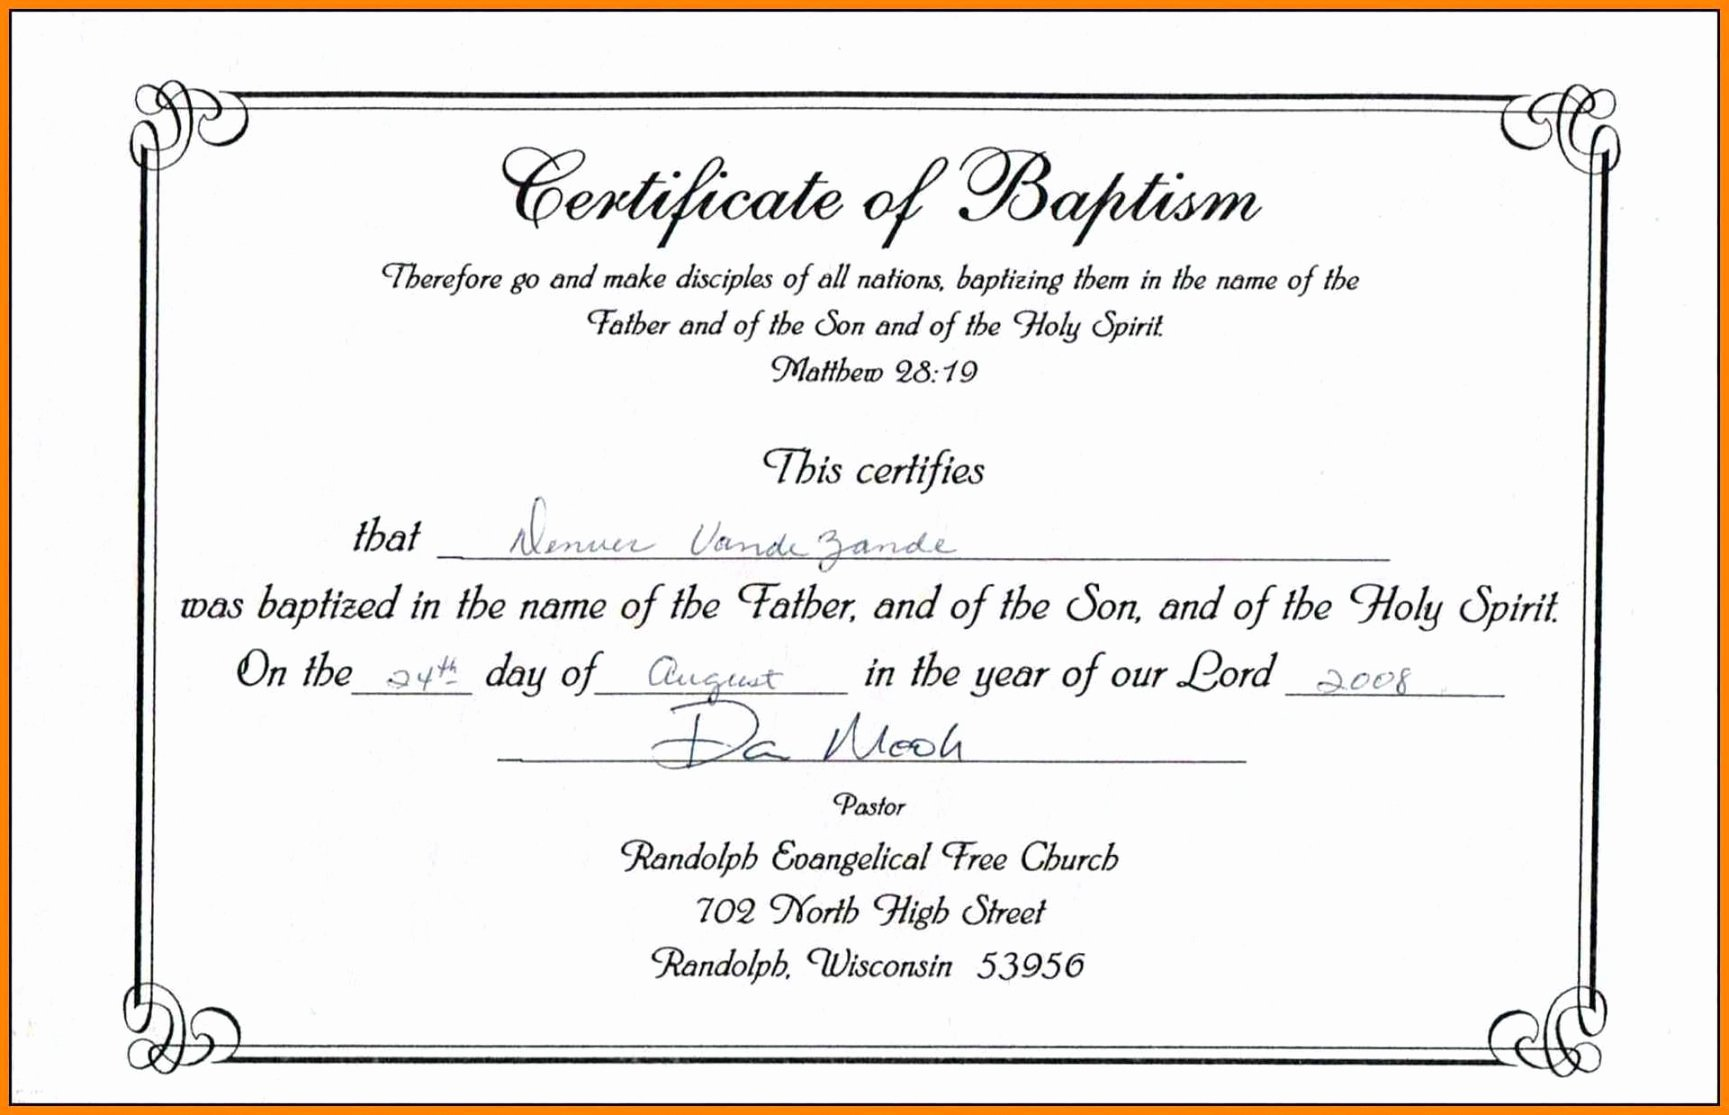 Baptism Certificate Template Publisher Awesome Editable Baptism Certificate Template Publisher Download